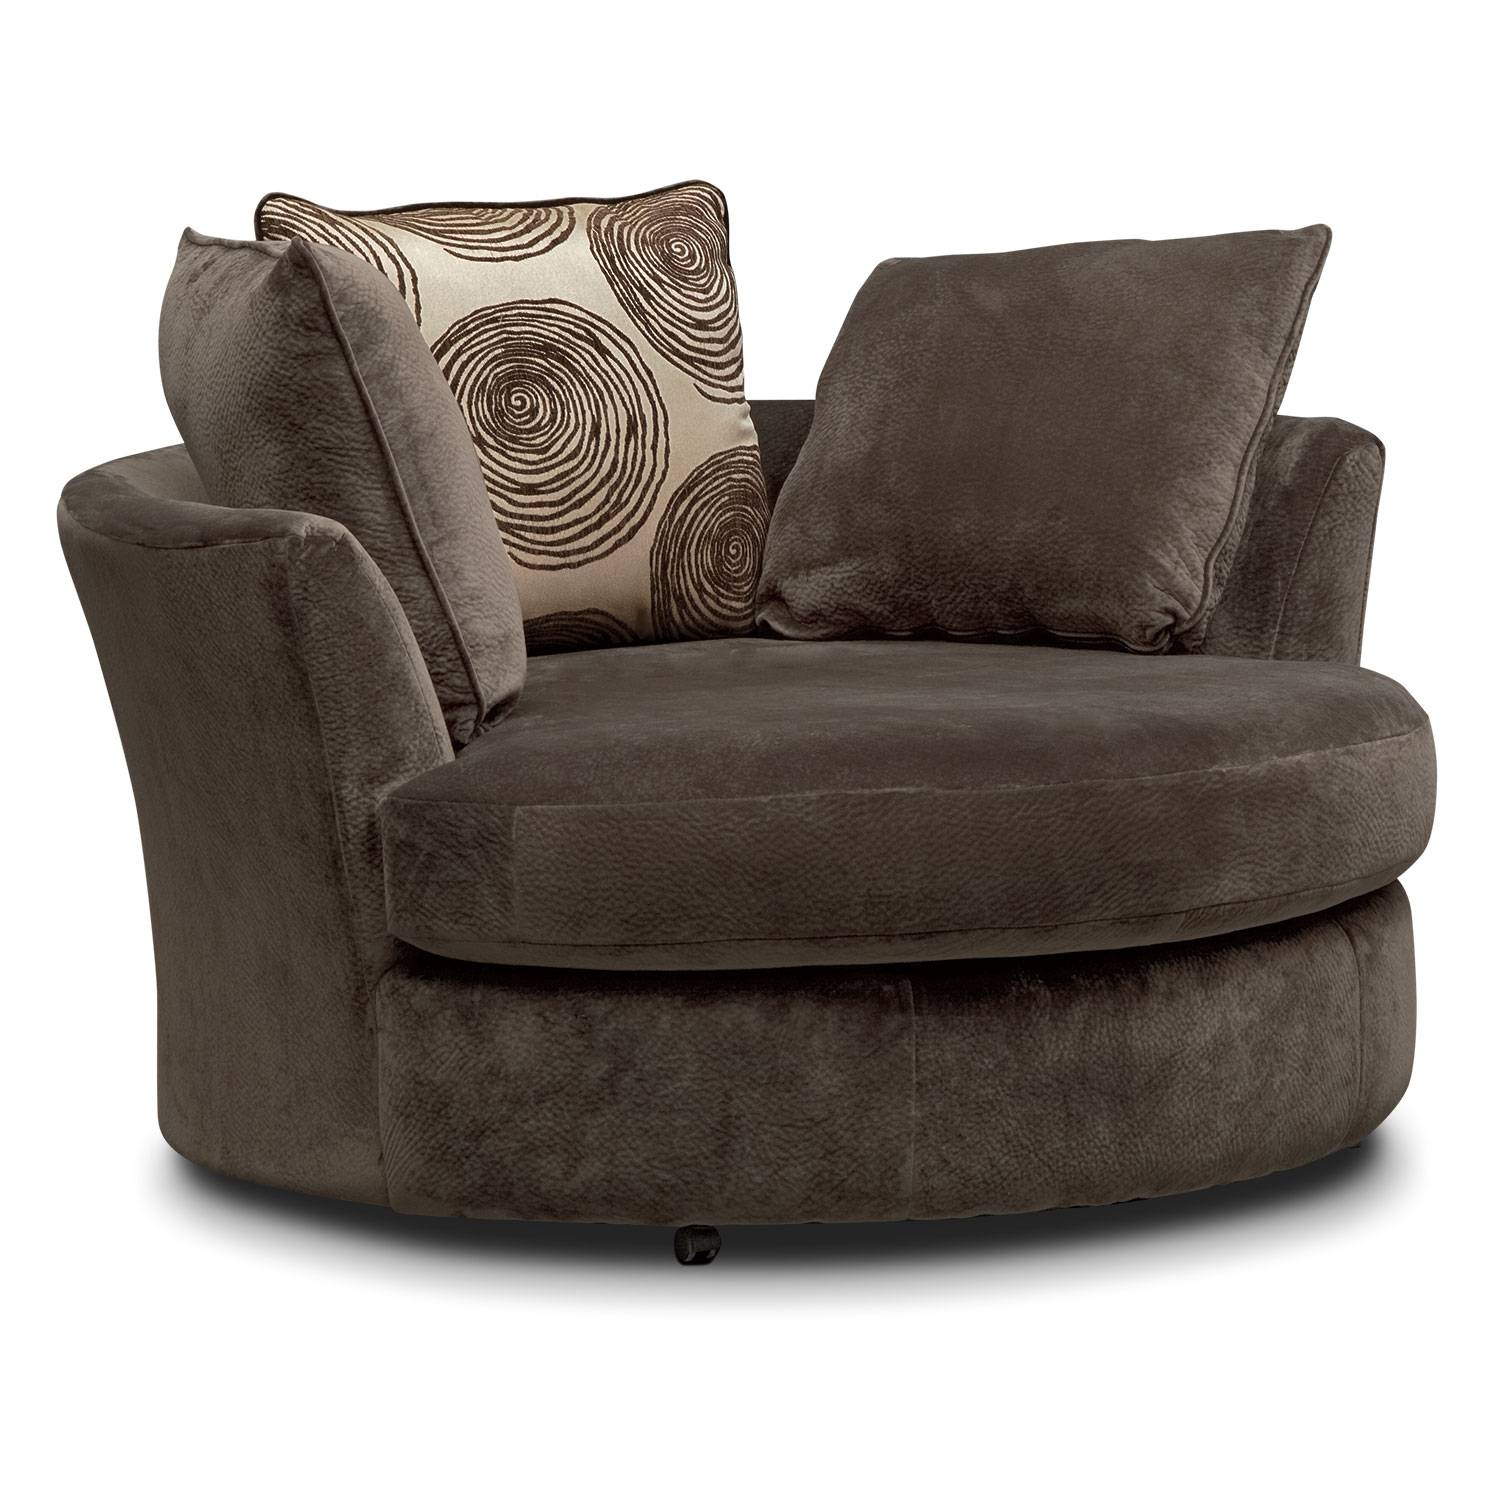 Cordelle Sofa And Swivel Chair Set – Chocolate | Value City Furniture With Swivel Sofa Chairs (View 3 of 30)